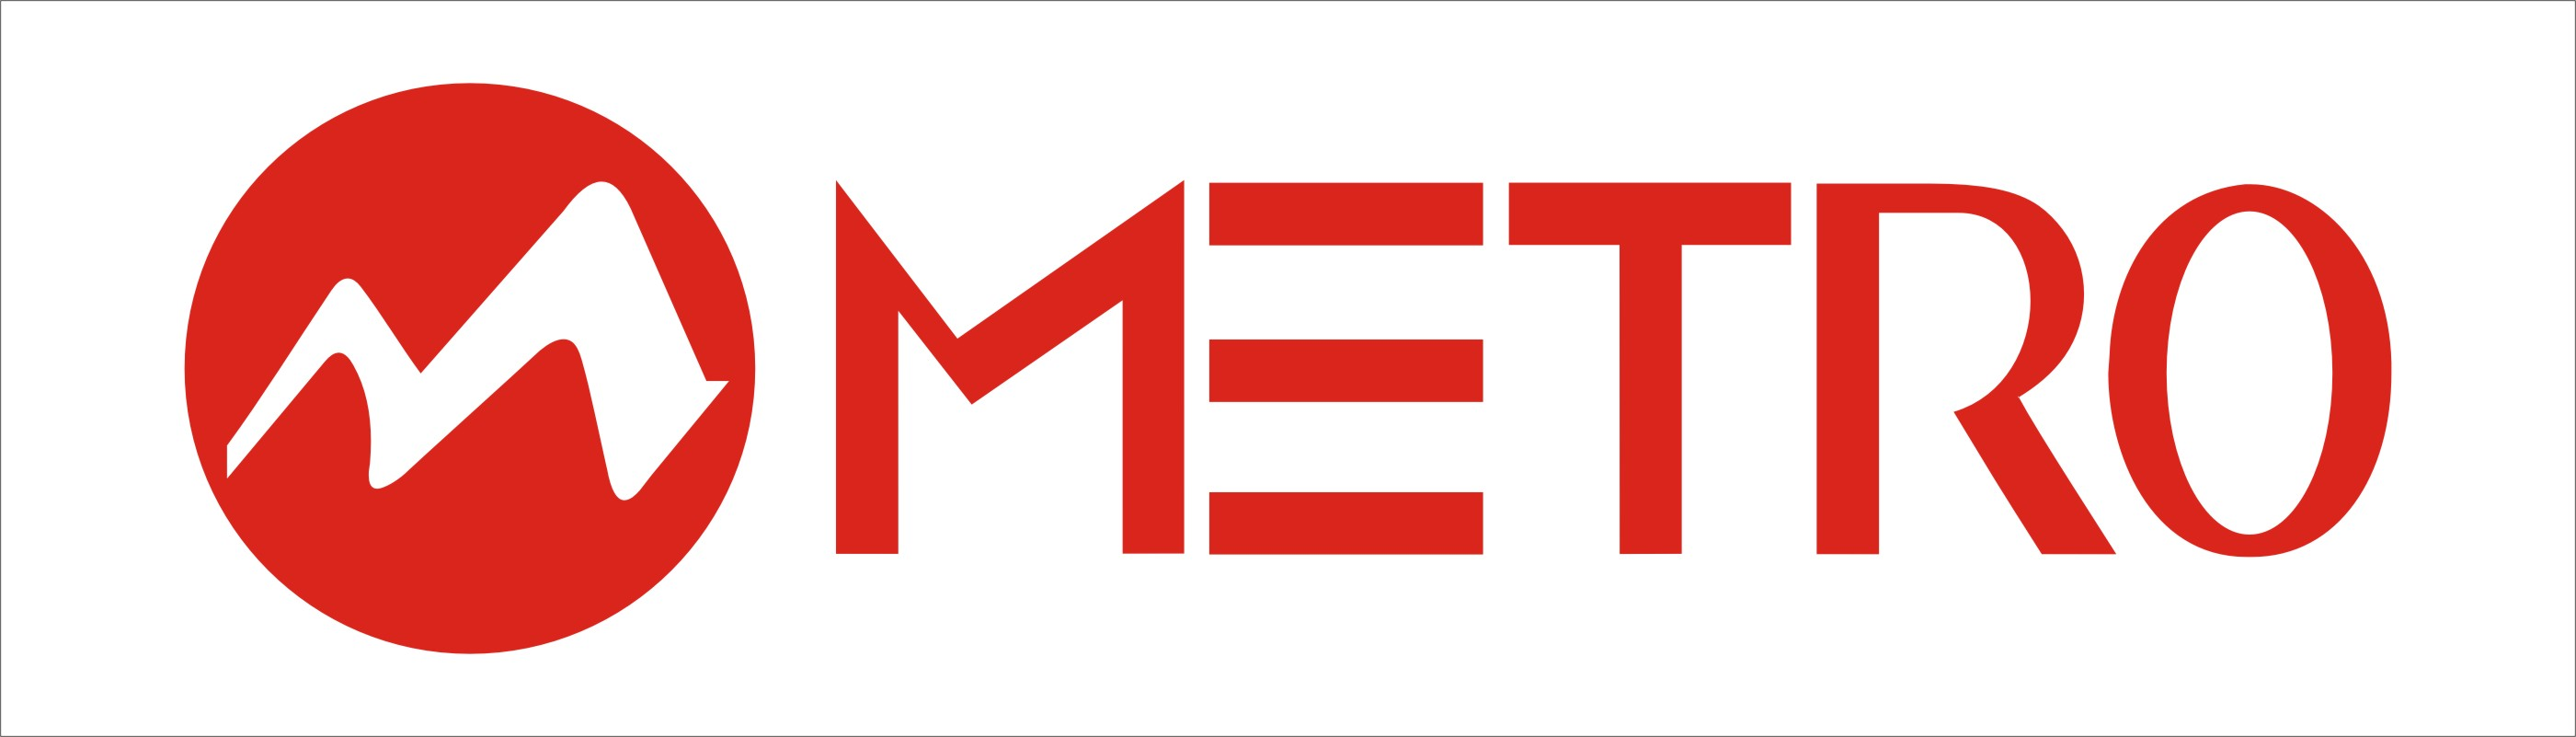 metro Footwear Brands of India